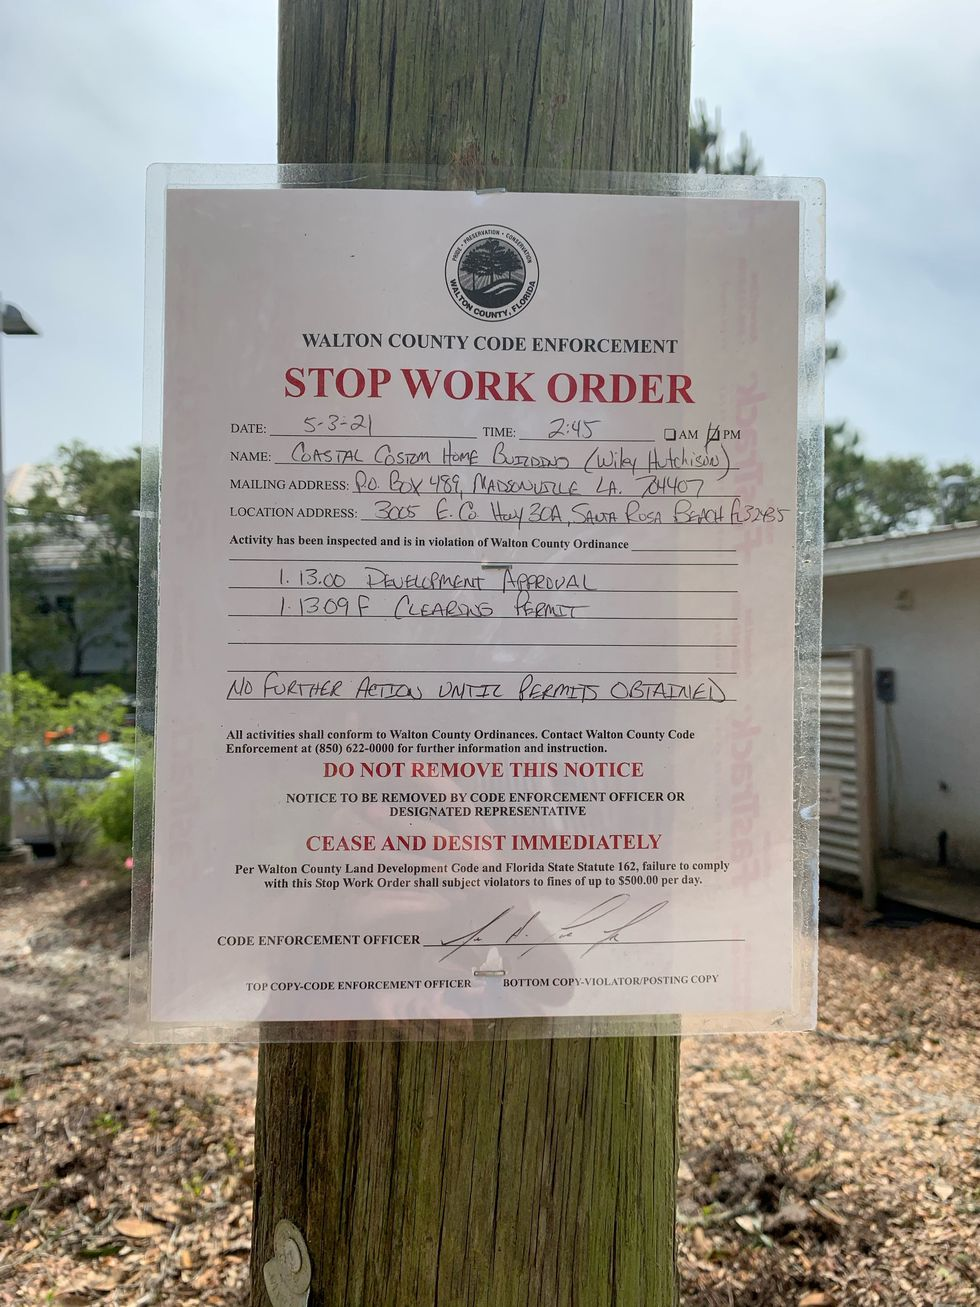 A stop work order was issued Monday afternoon by Walton County.